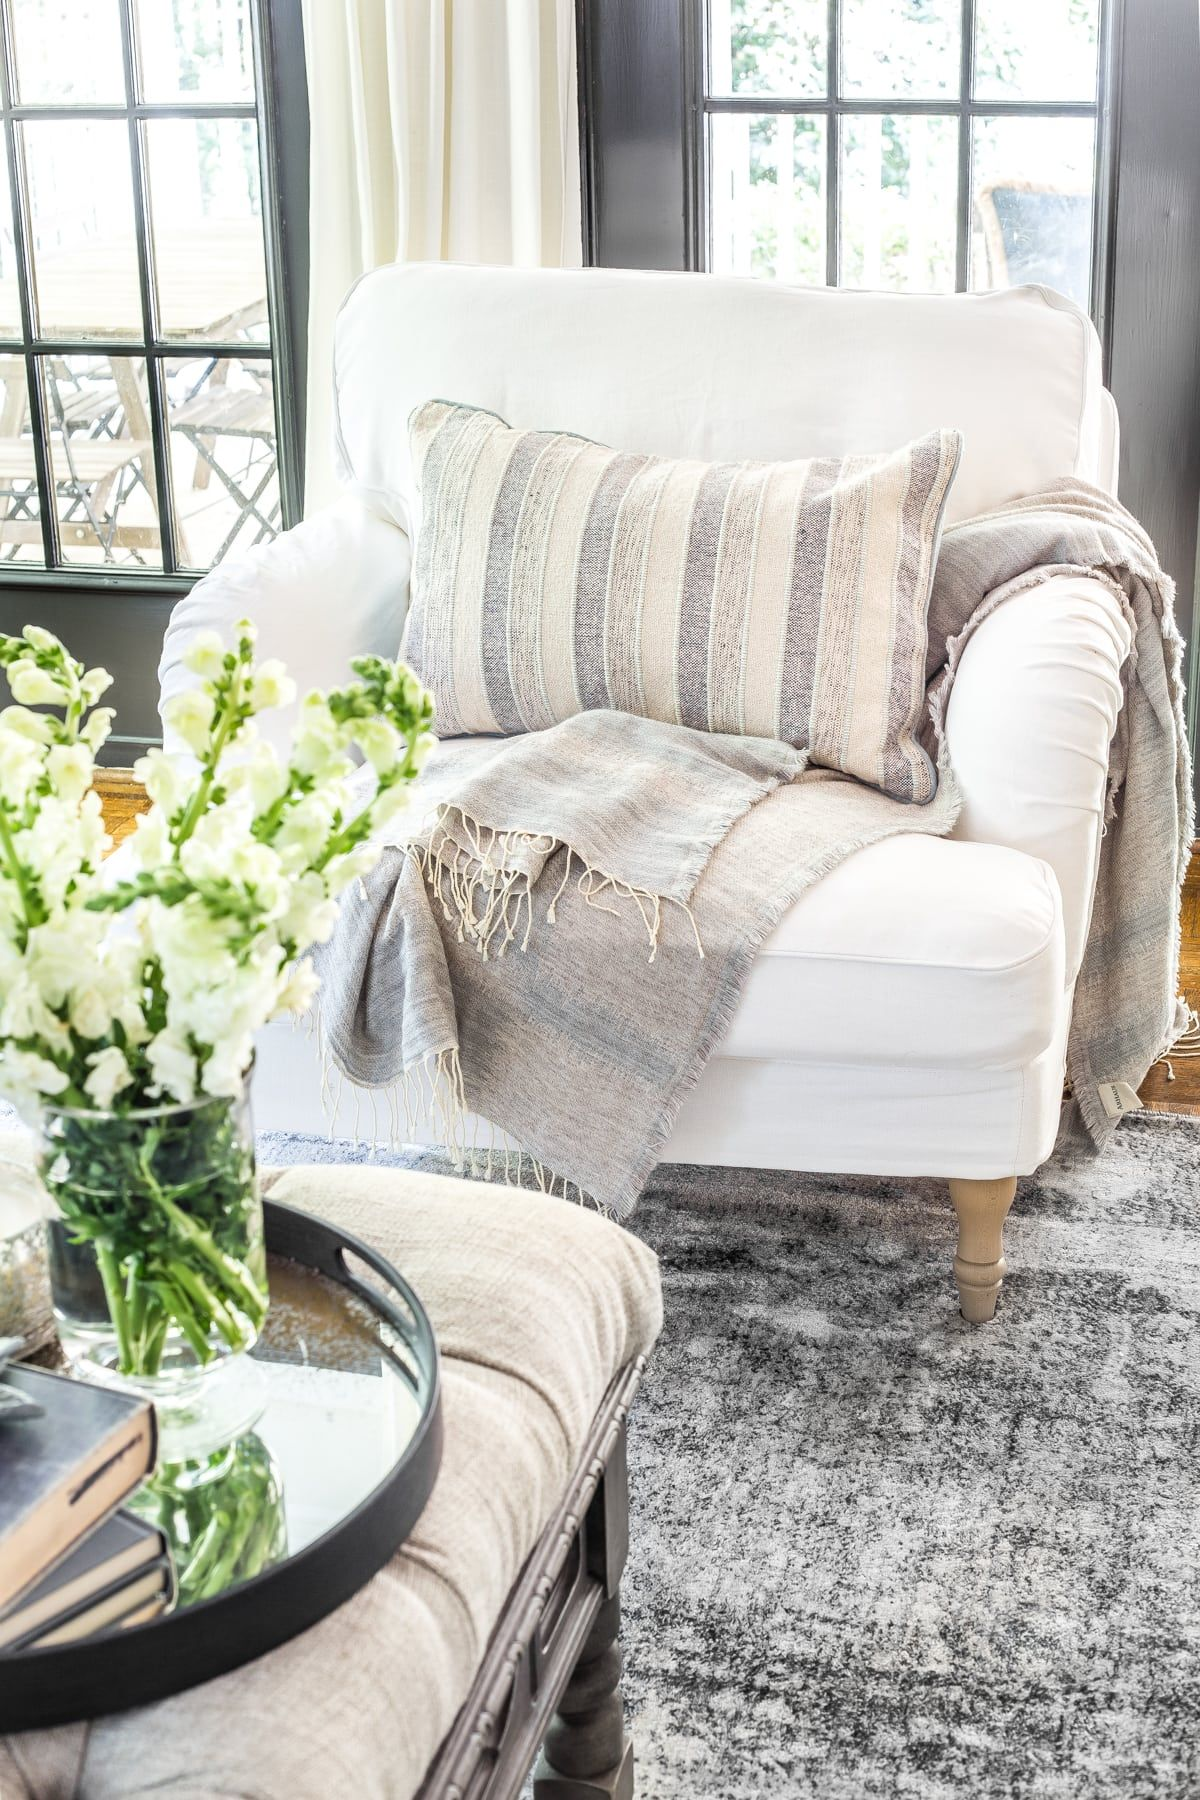 New Slipcovers For The Ikea Living Room Furniture Bless Er House Ikea Living Room Furniture Ikea Living Room Ikea Living Room Chairs #slipcovered #living #room #sets